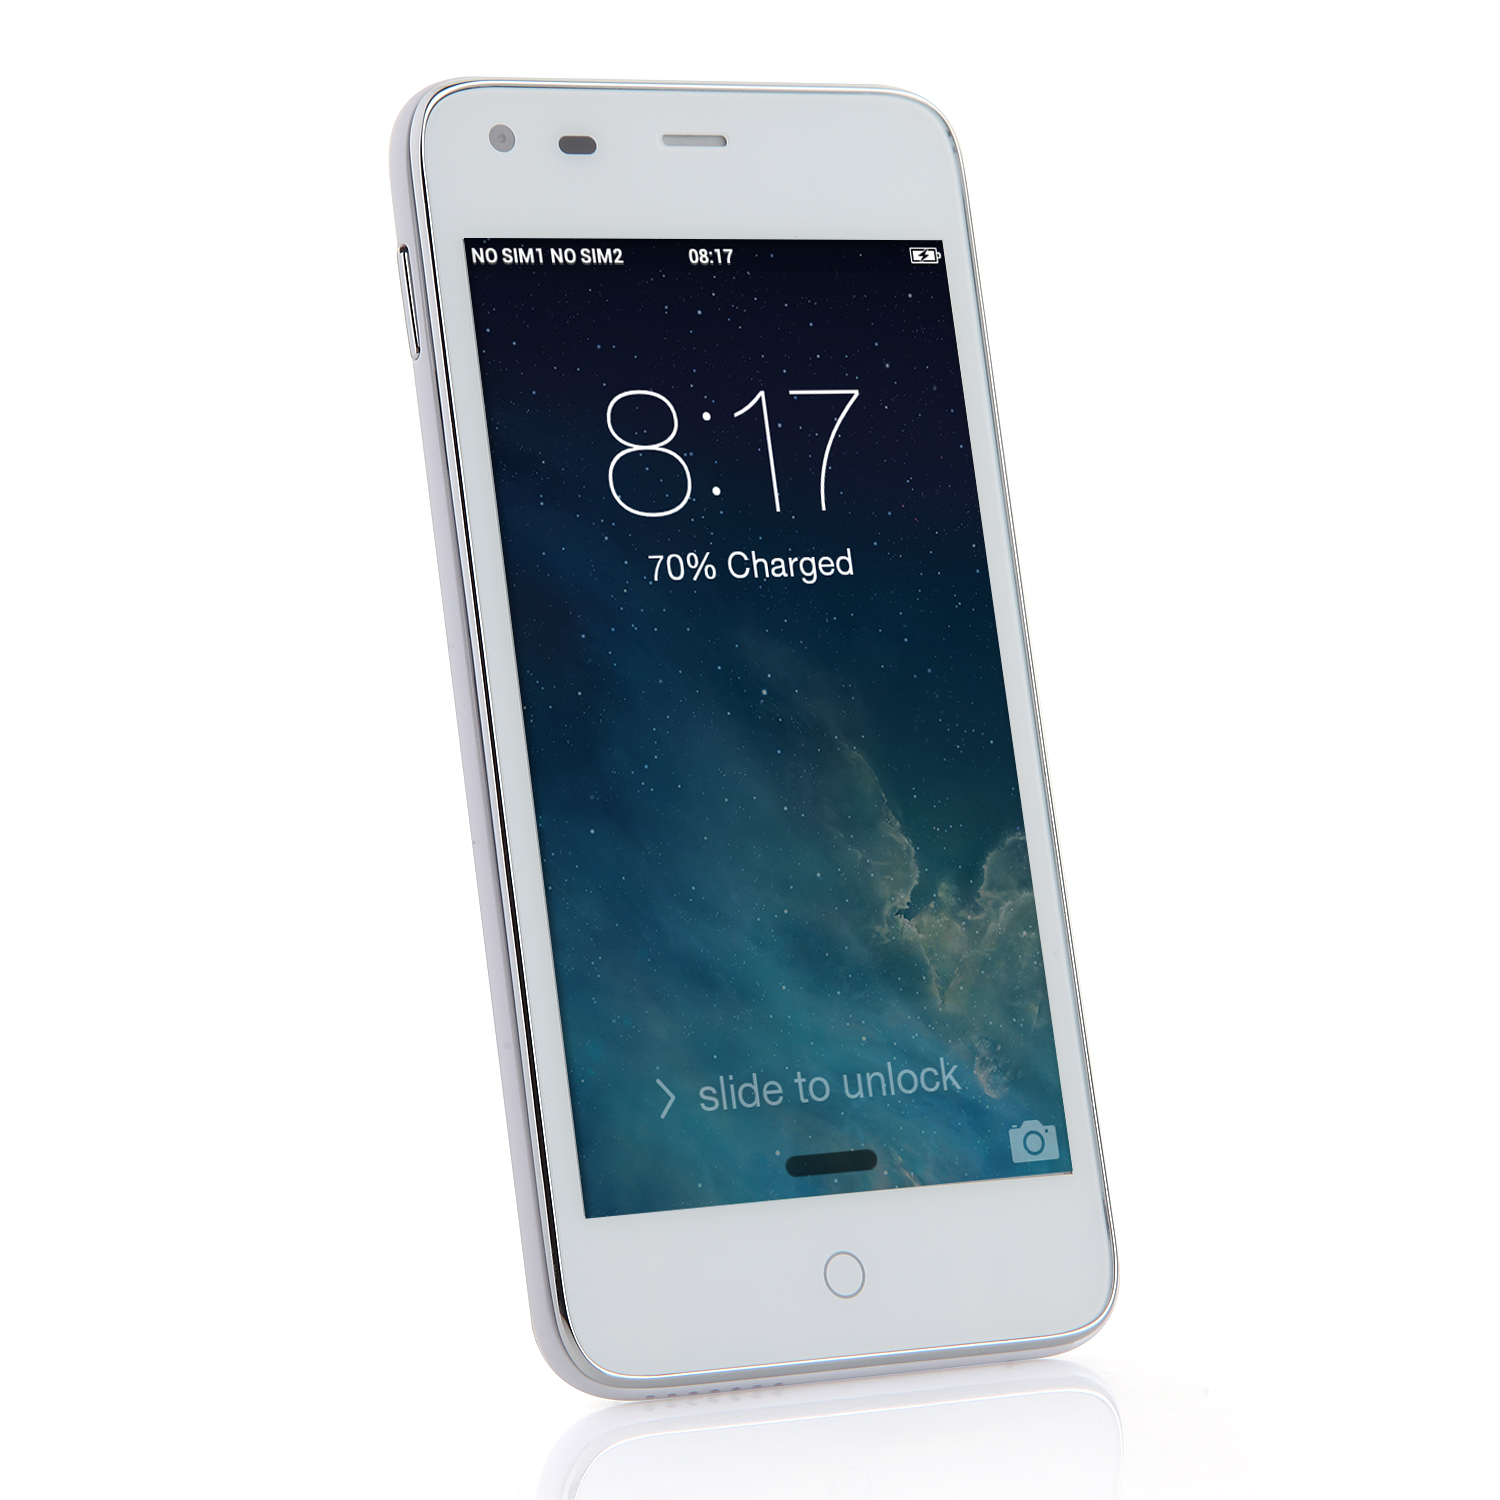 Tengda X5 Smartphone 4.5 Inch SC6825 Dual Core Android 4.0 Dual Camera White